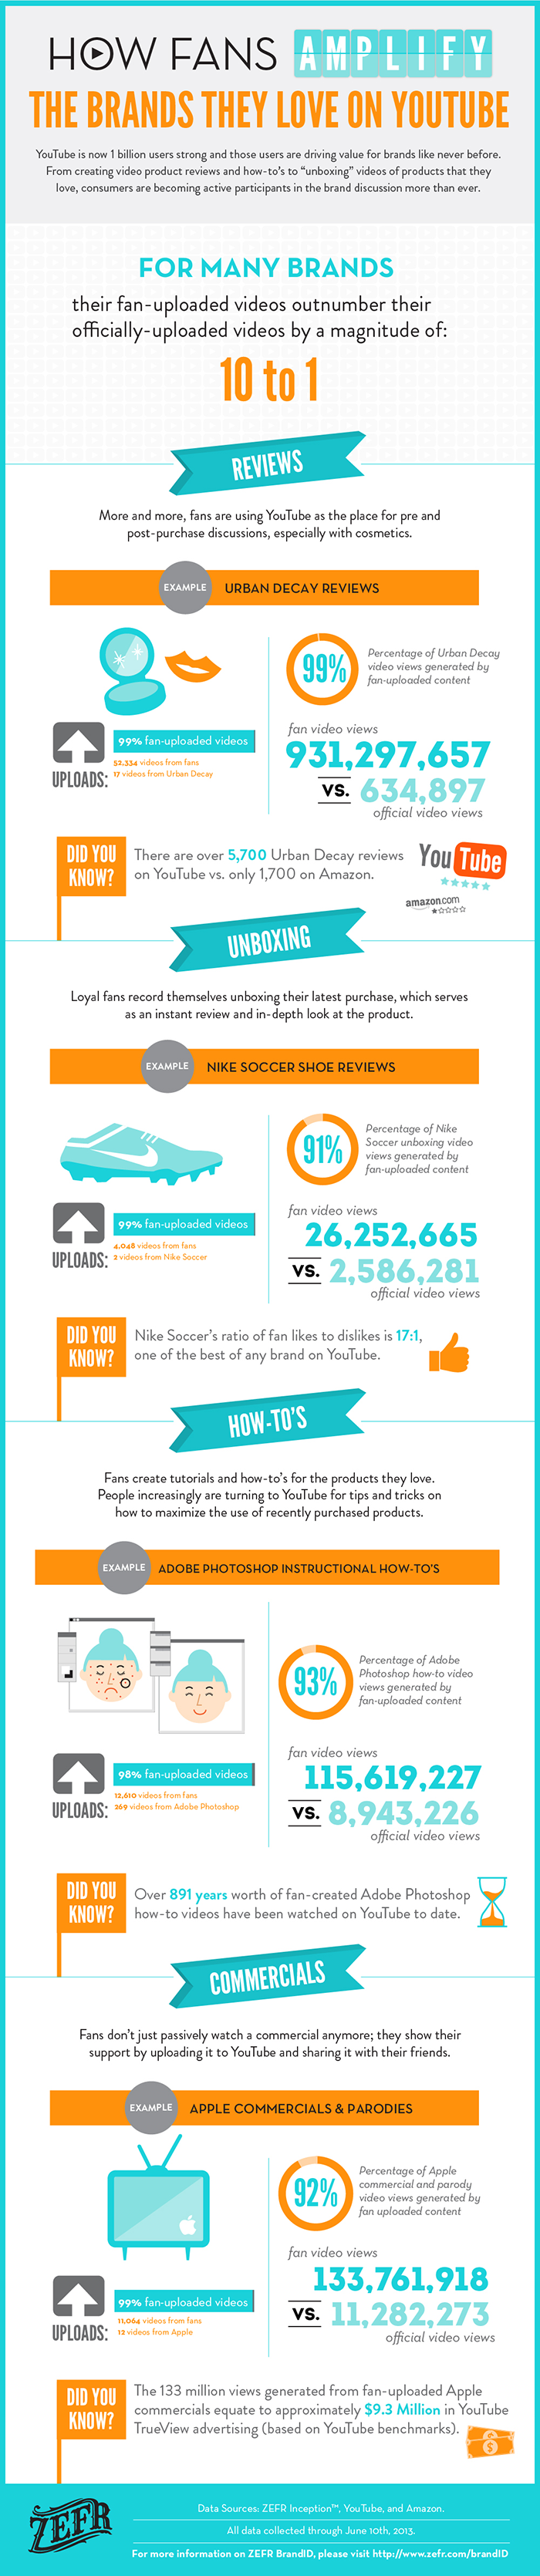 How Passionate Followers Amplify The Brands They Love On YouTube [infographic]